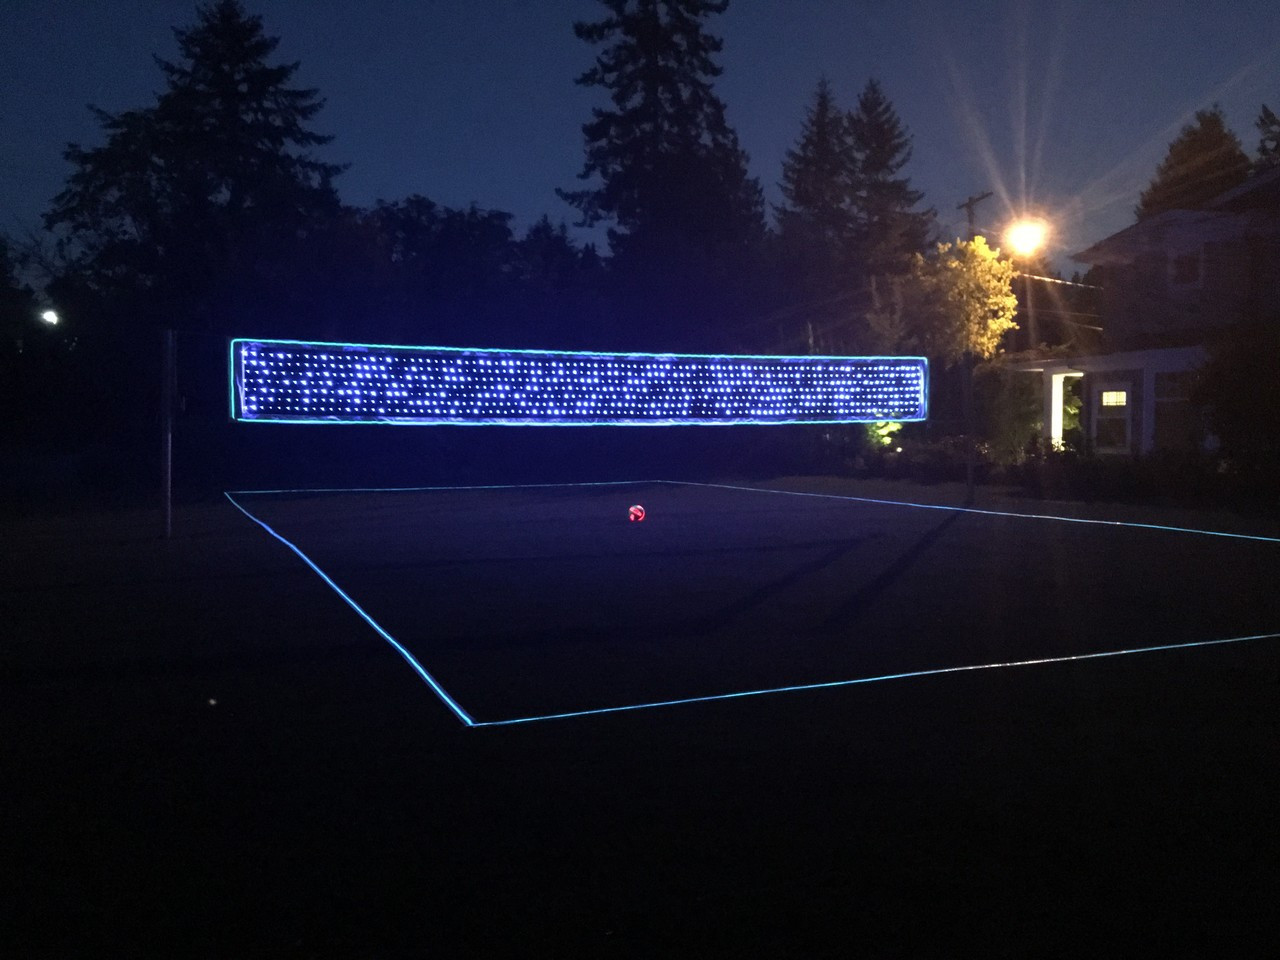 Light Up Volleyball Net & Boundary Lines